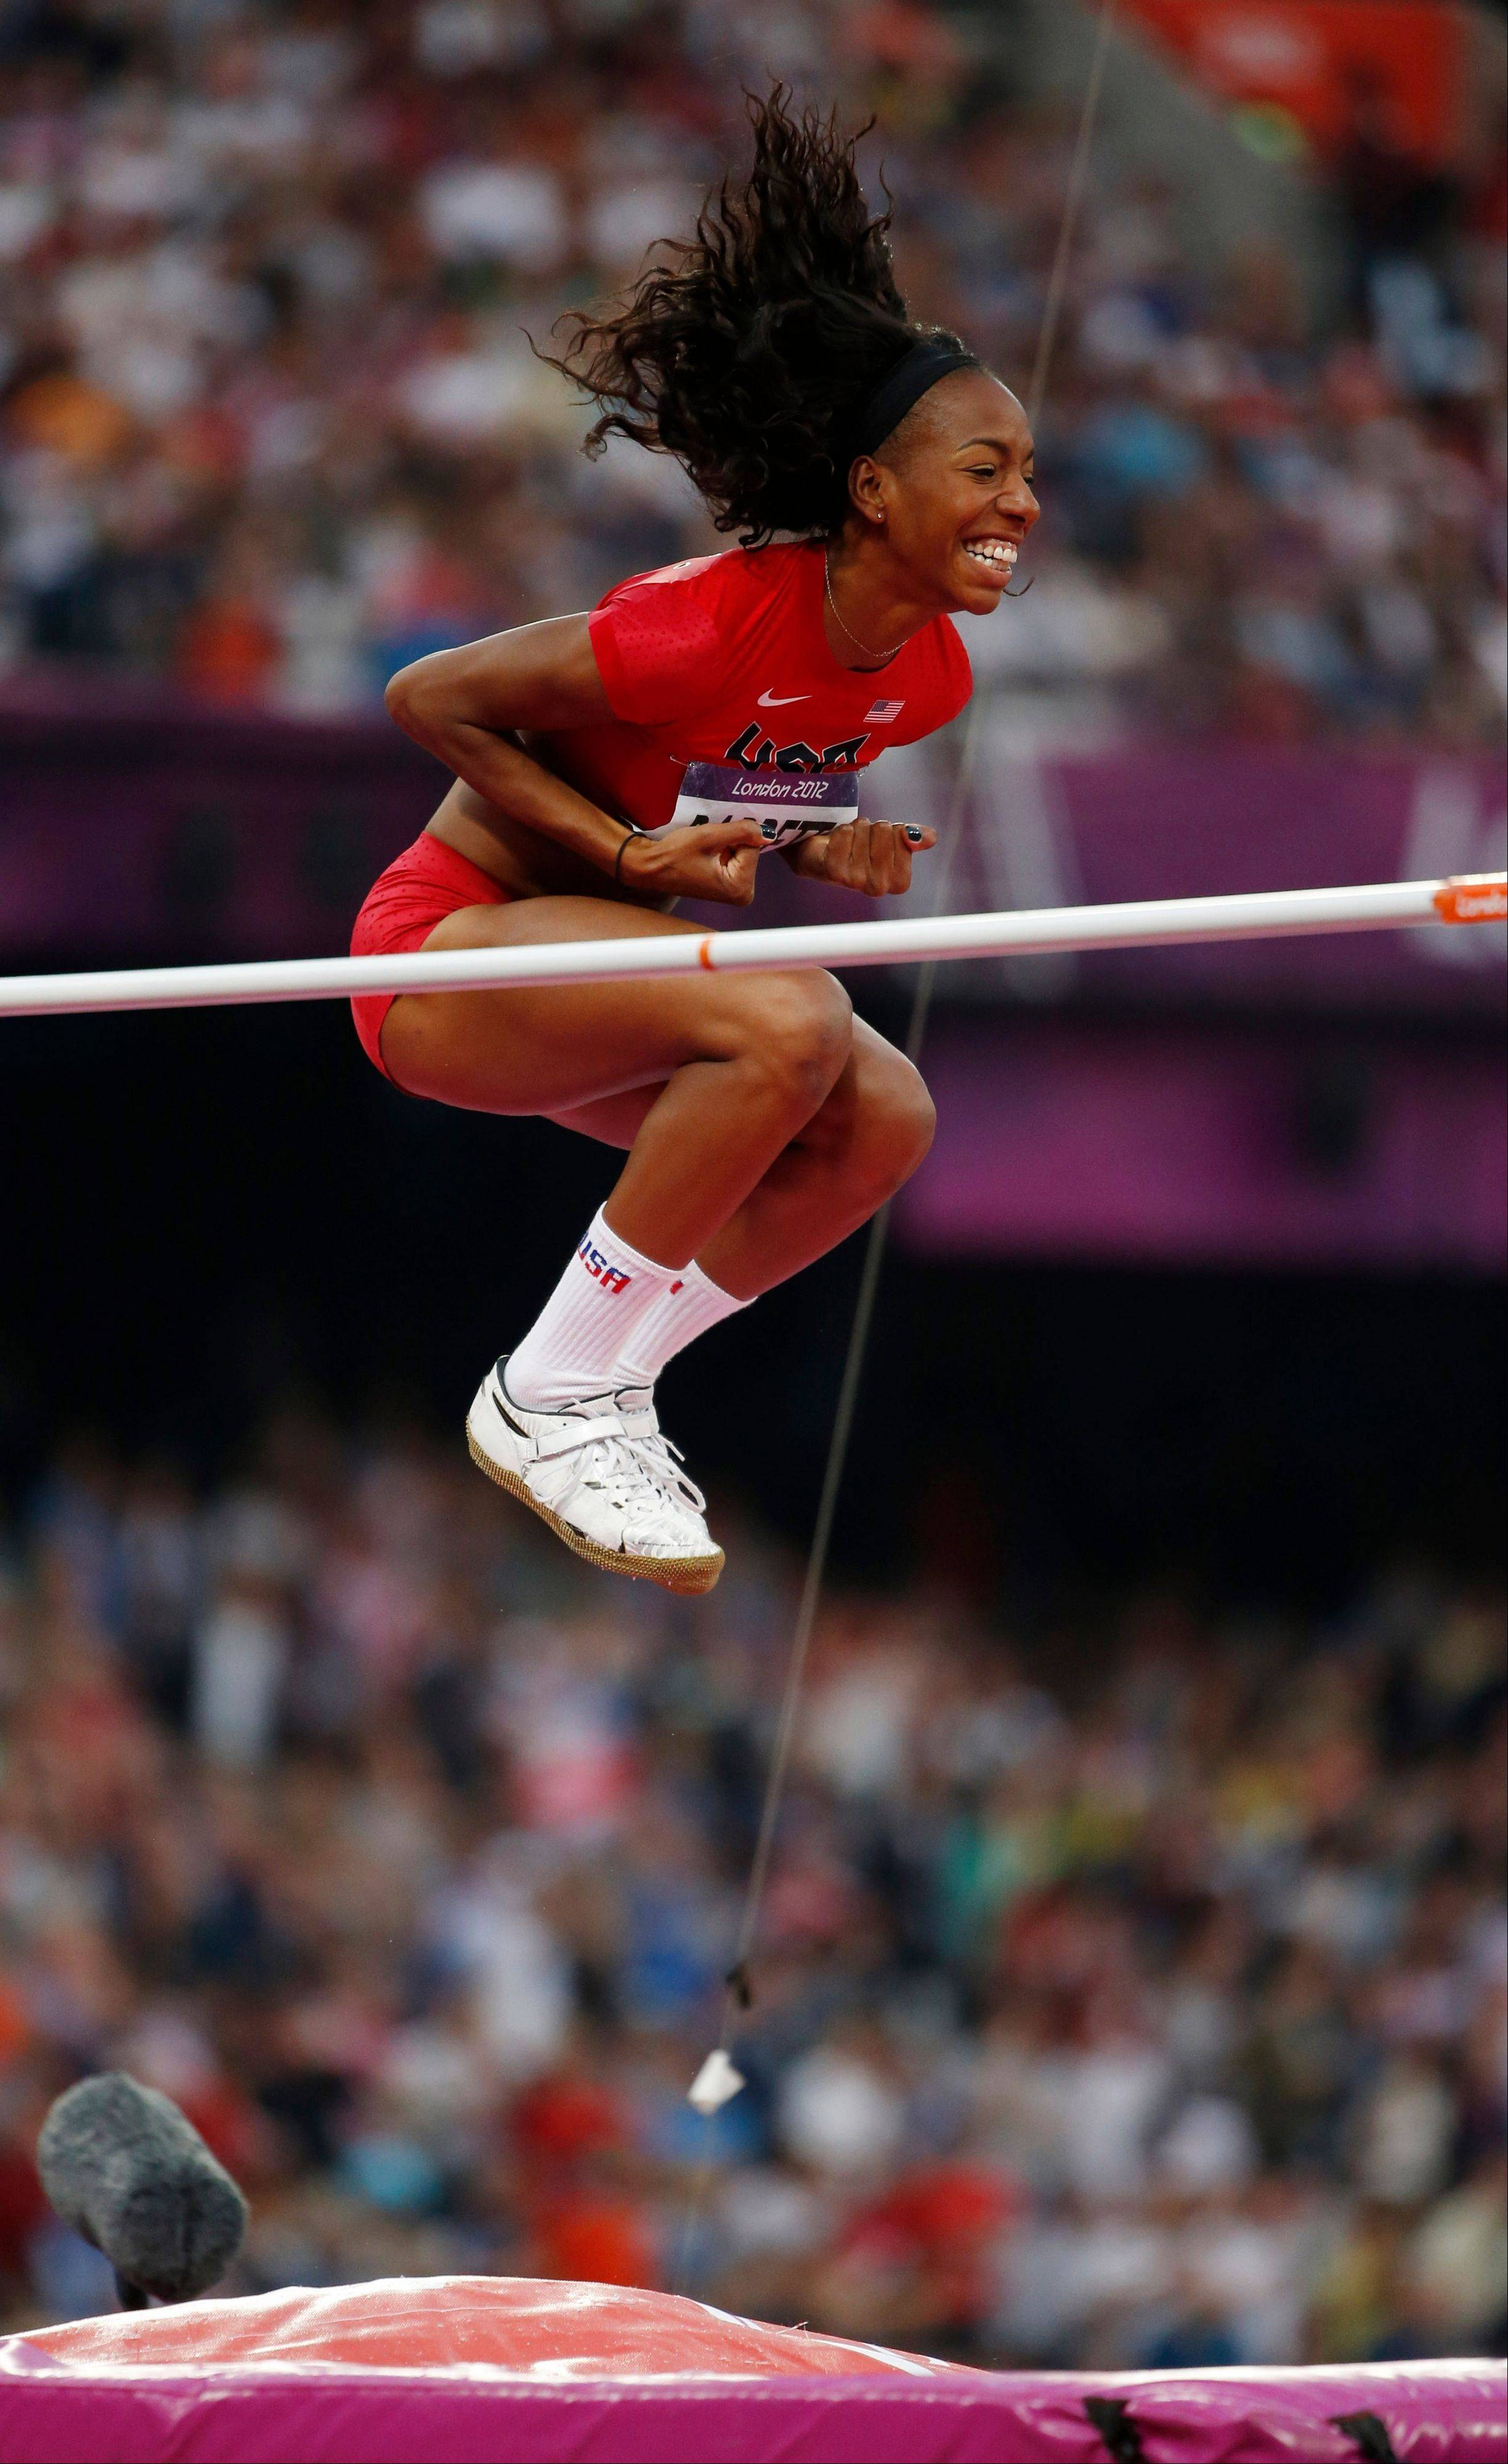 United States' Brigetta Barrett reacts as she clears the bar in the women's high jump final during the athletics in the Olympic Stadium at the 2012 Summer Olympics, London, Saturday, Aug. 11, 2012.